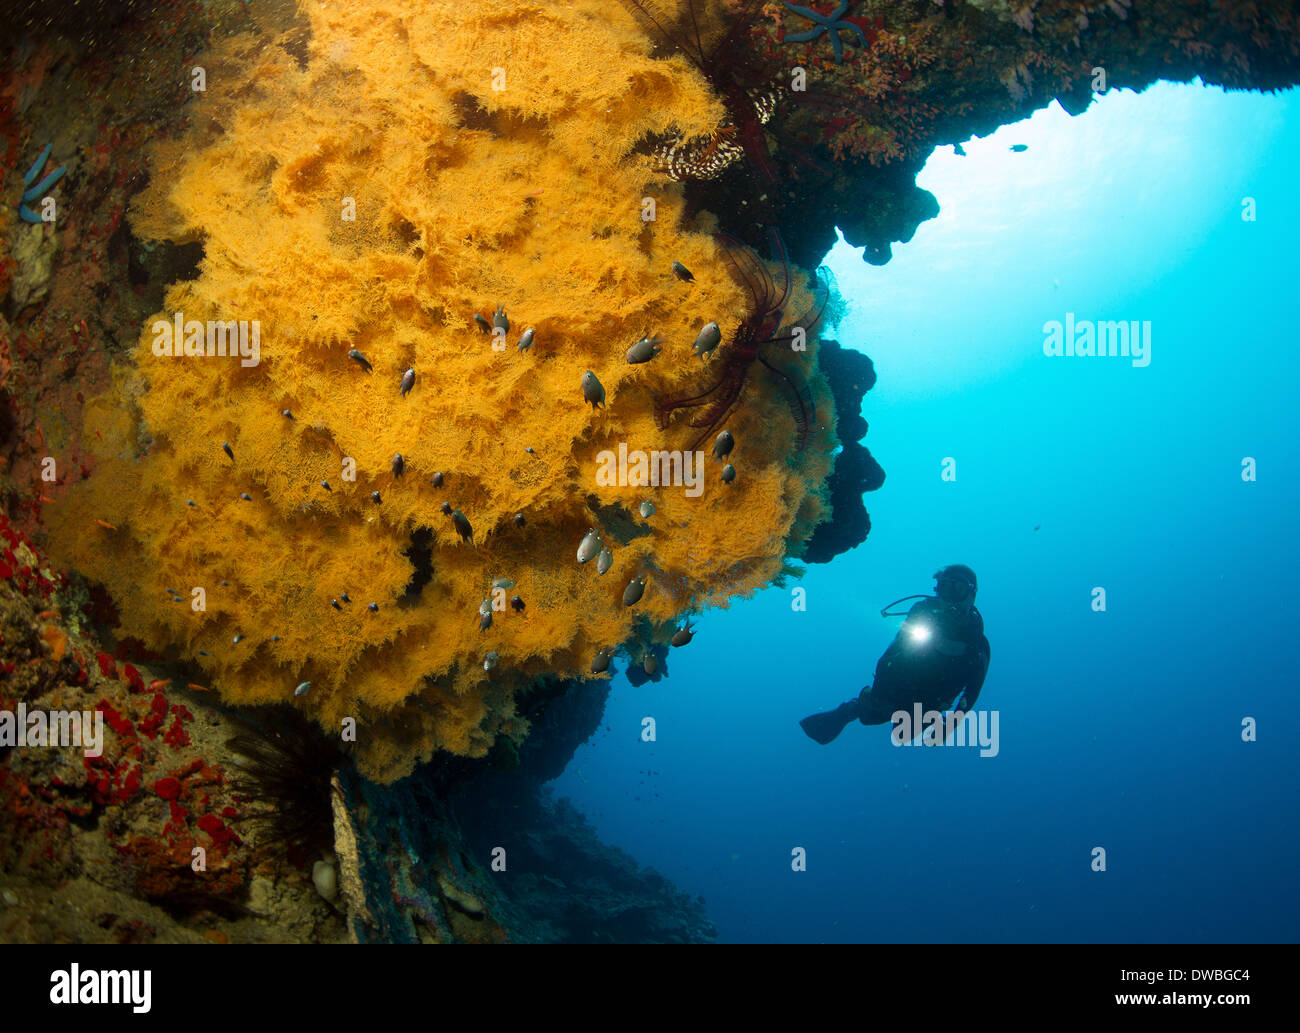 Diver and Black coral. - Stock Image